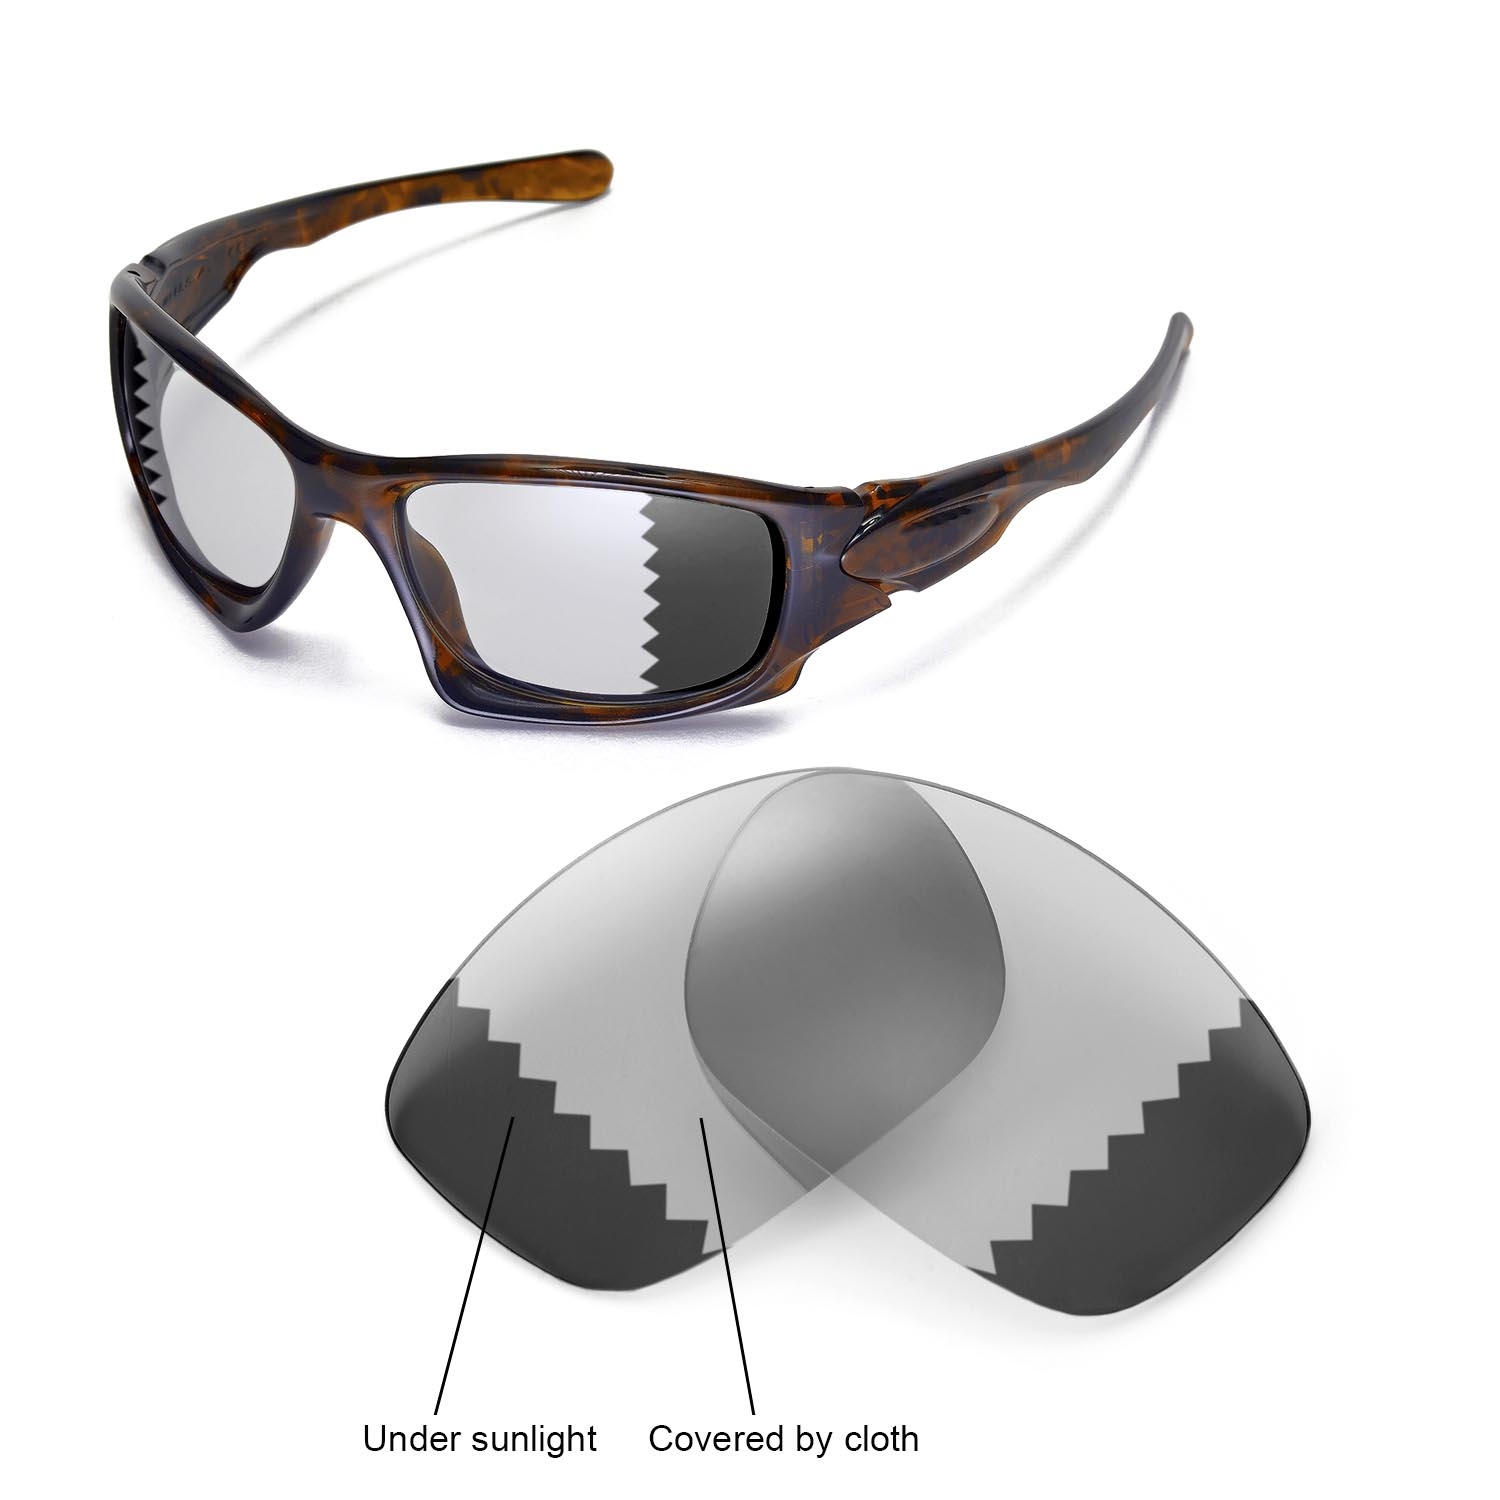 8a3db61178 Details about New Walleva Polarized Transition Photochromic Lenses For  Oakley Ten Sunglasses